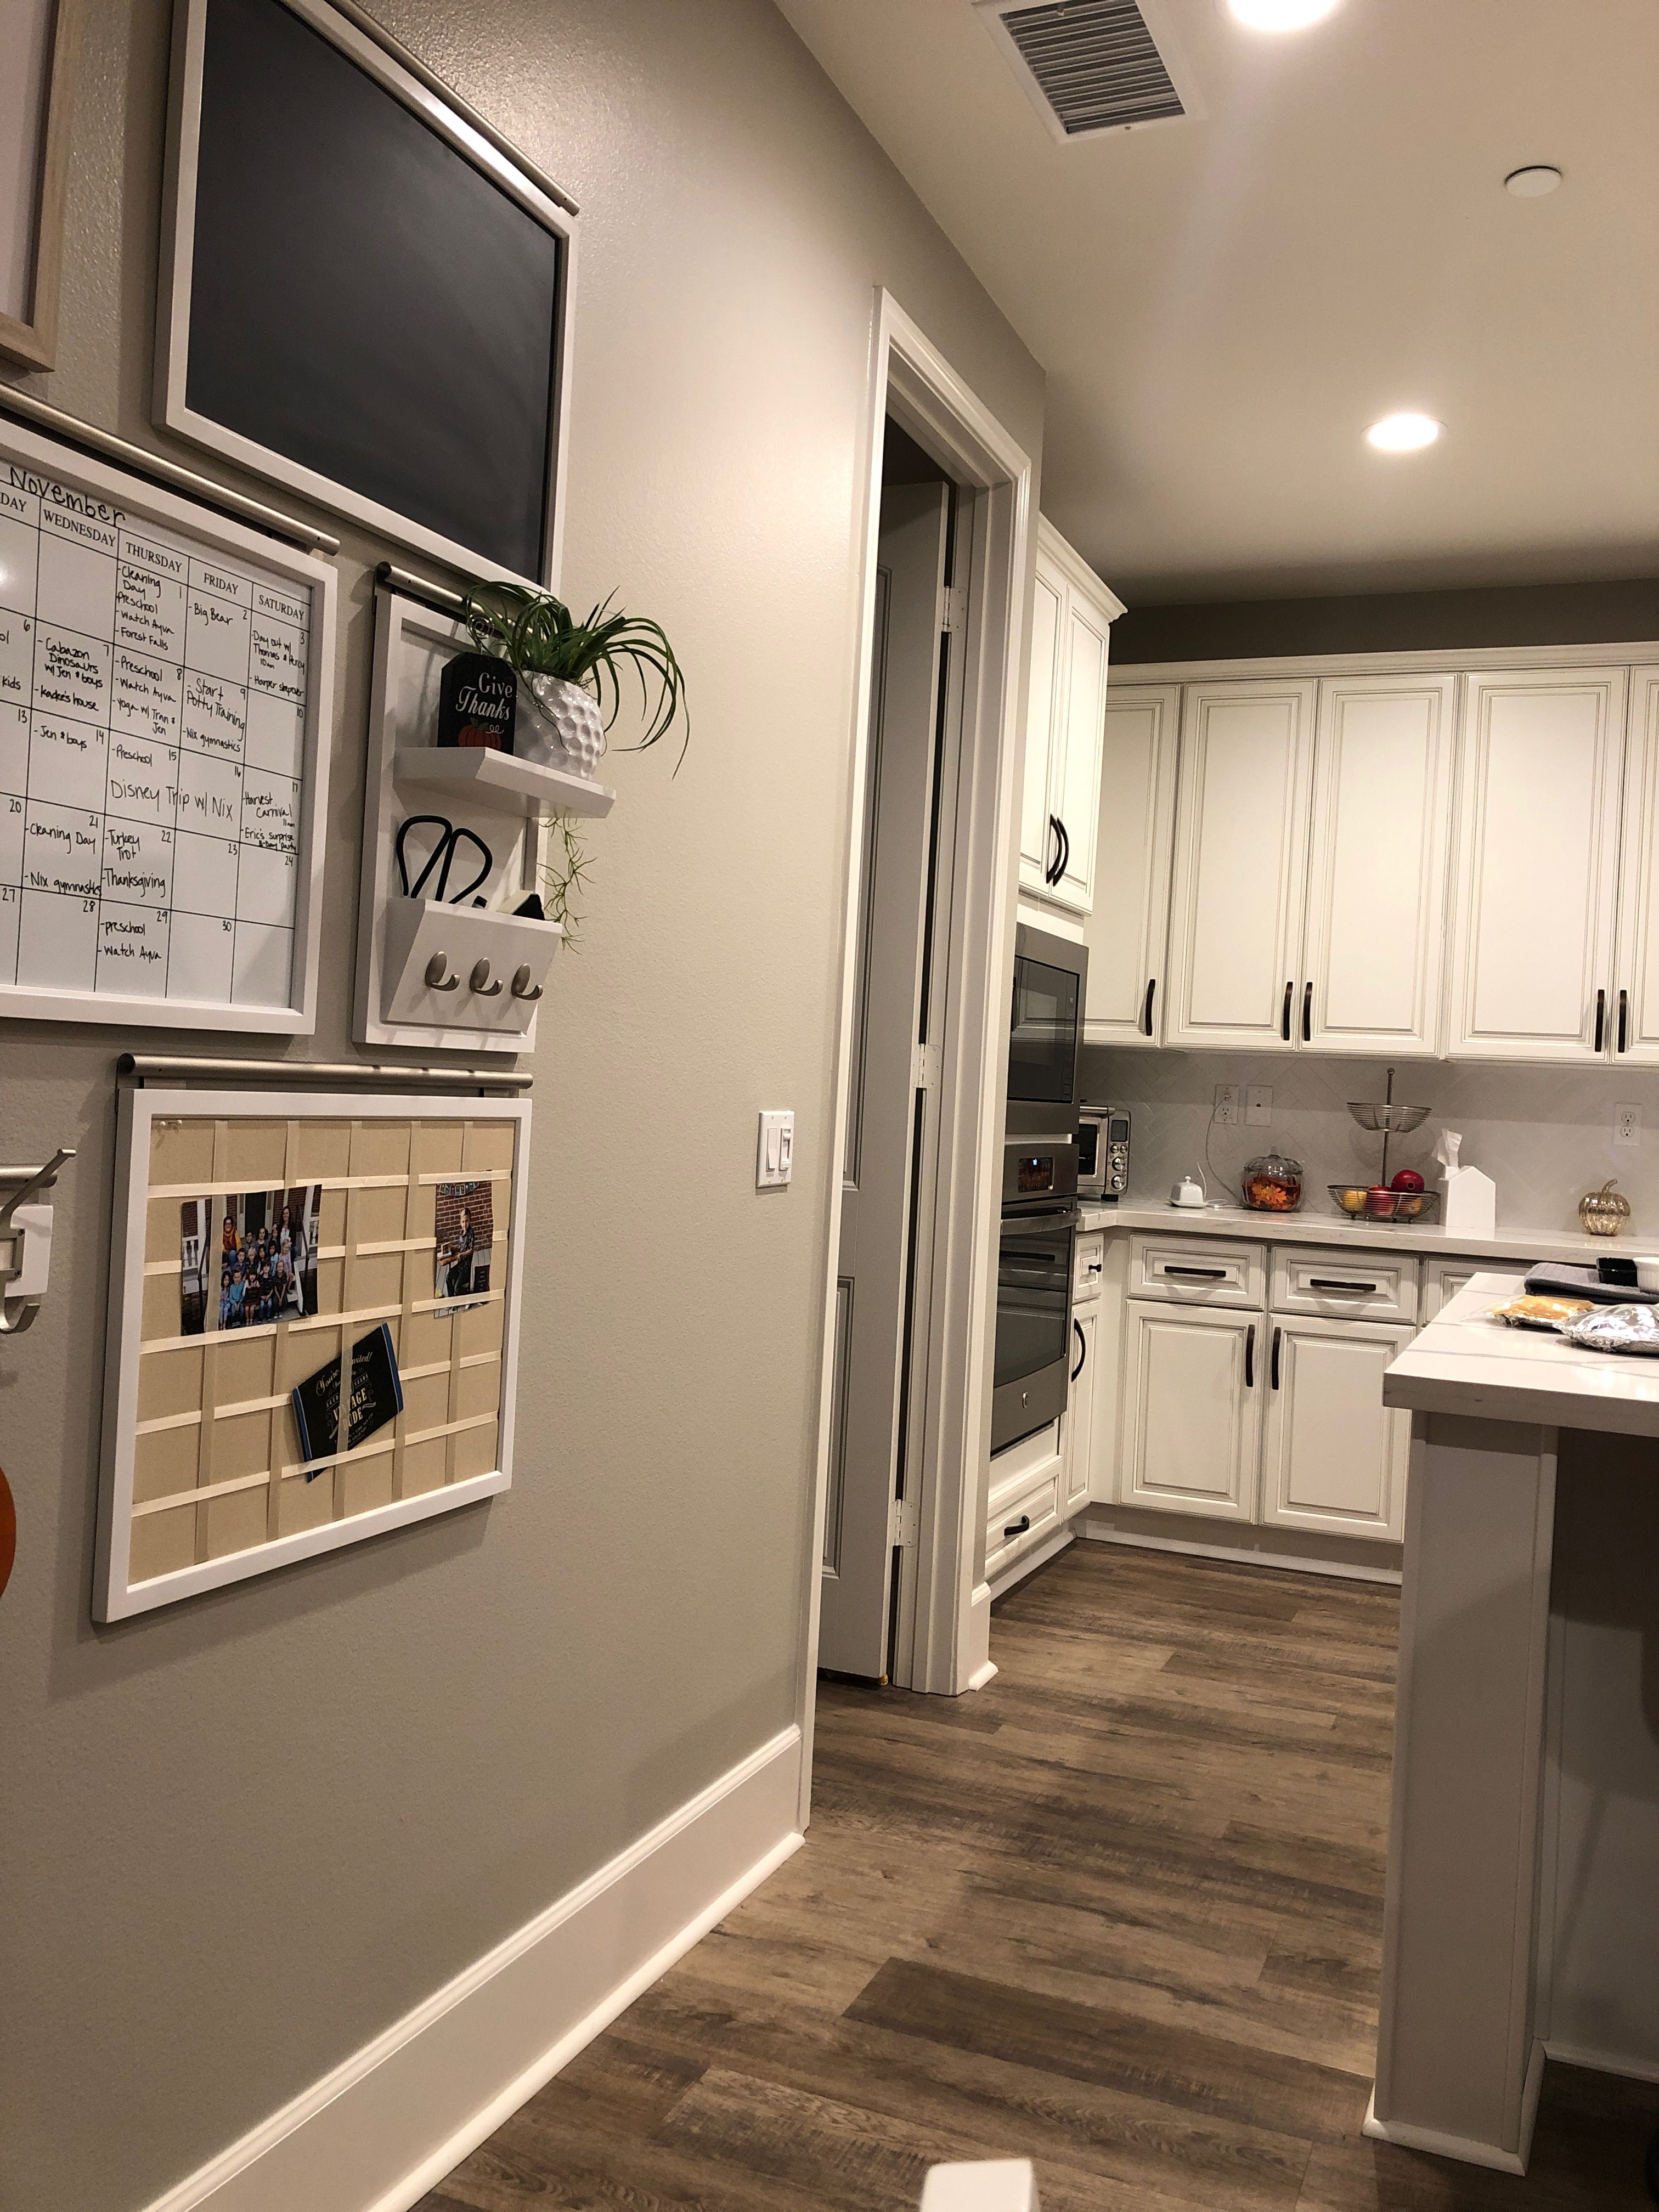 Pin by Tonia Vento on Joanna Gaines   Kitchen cabinets